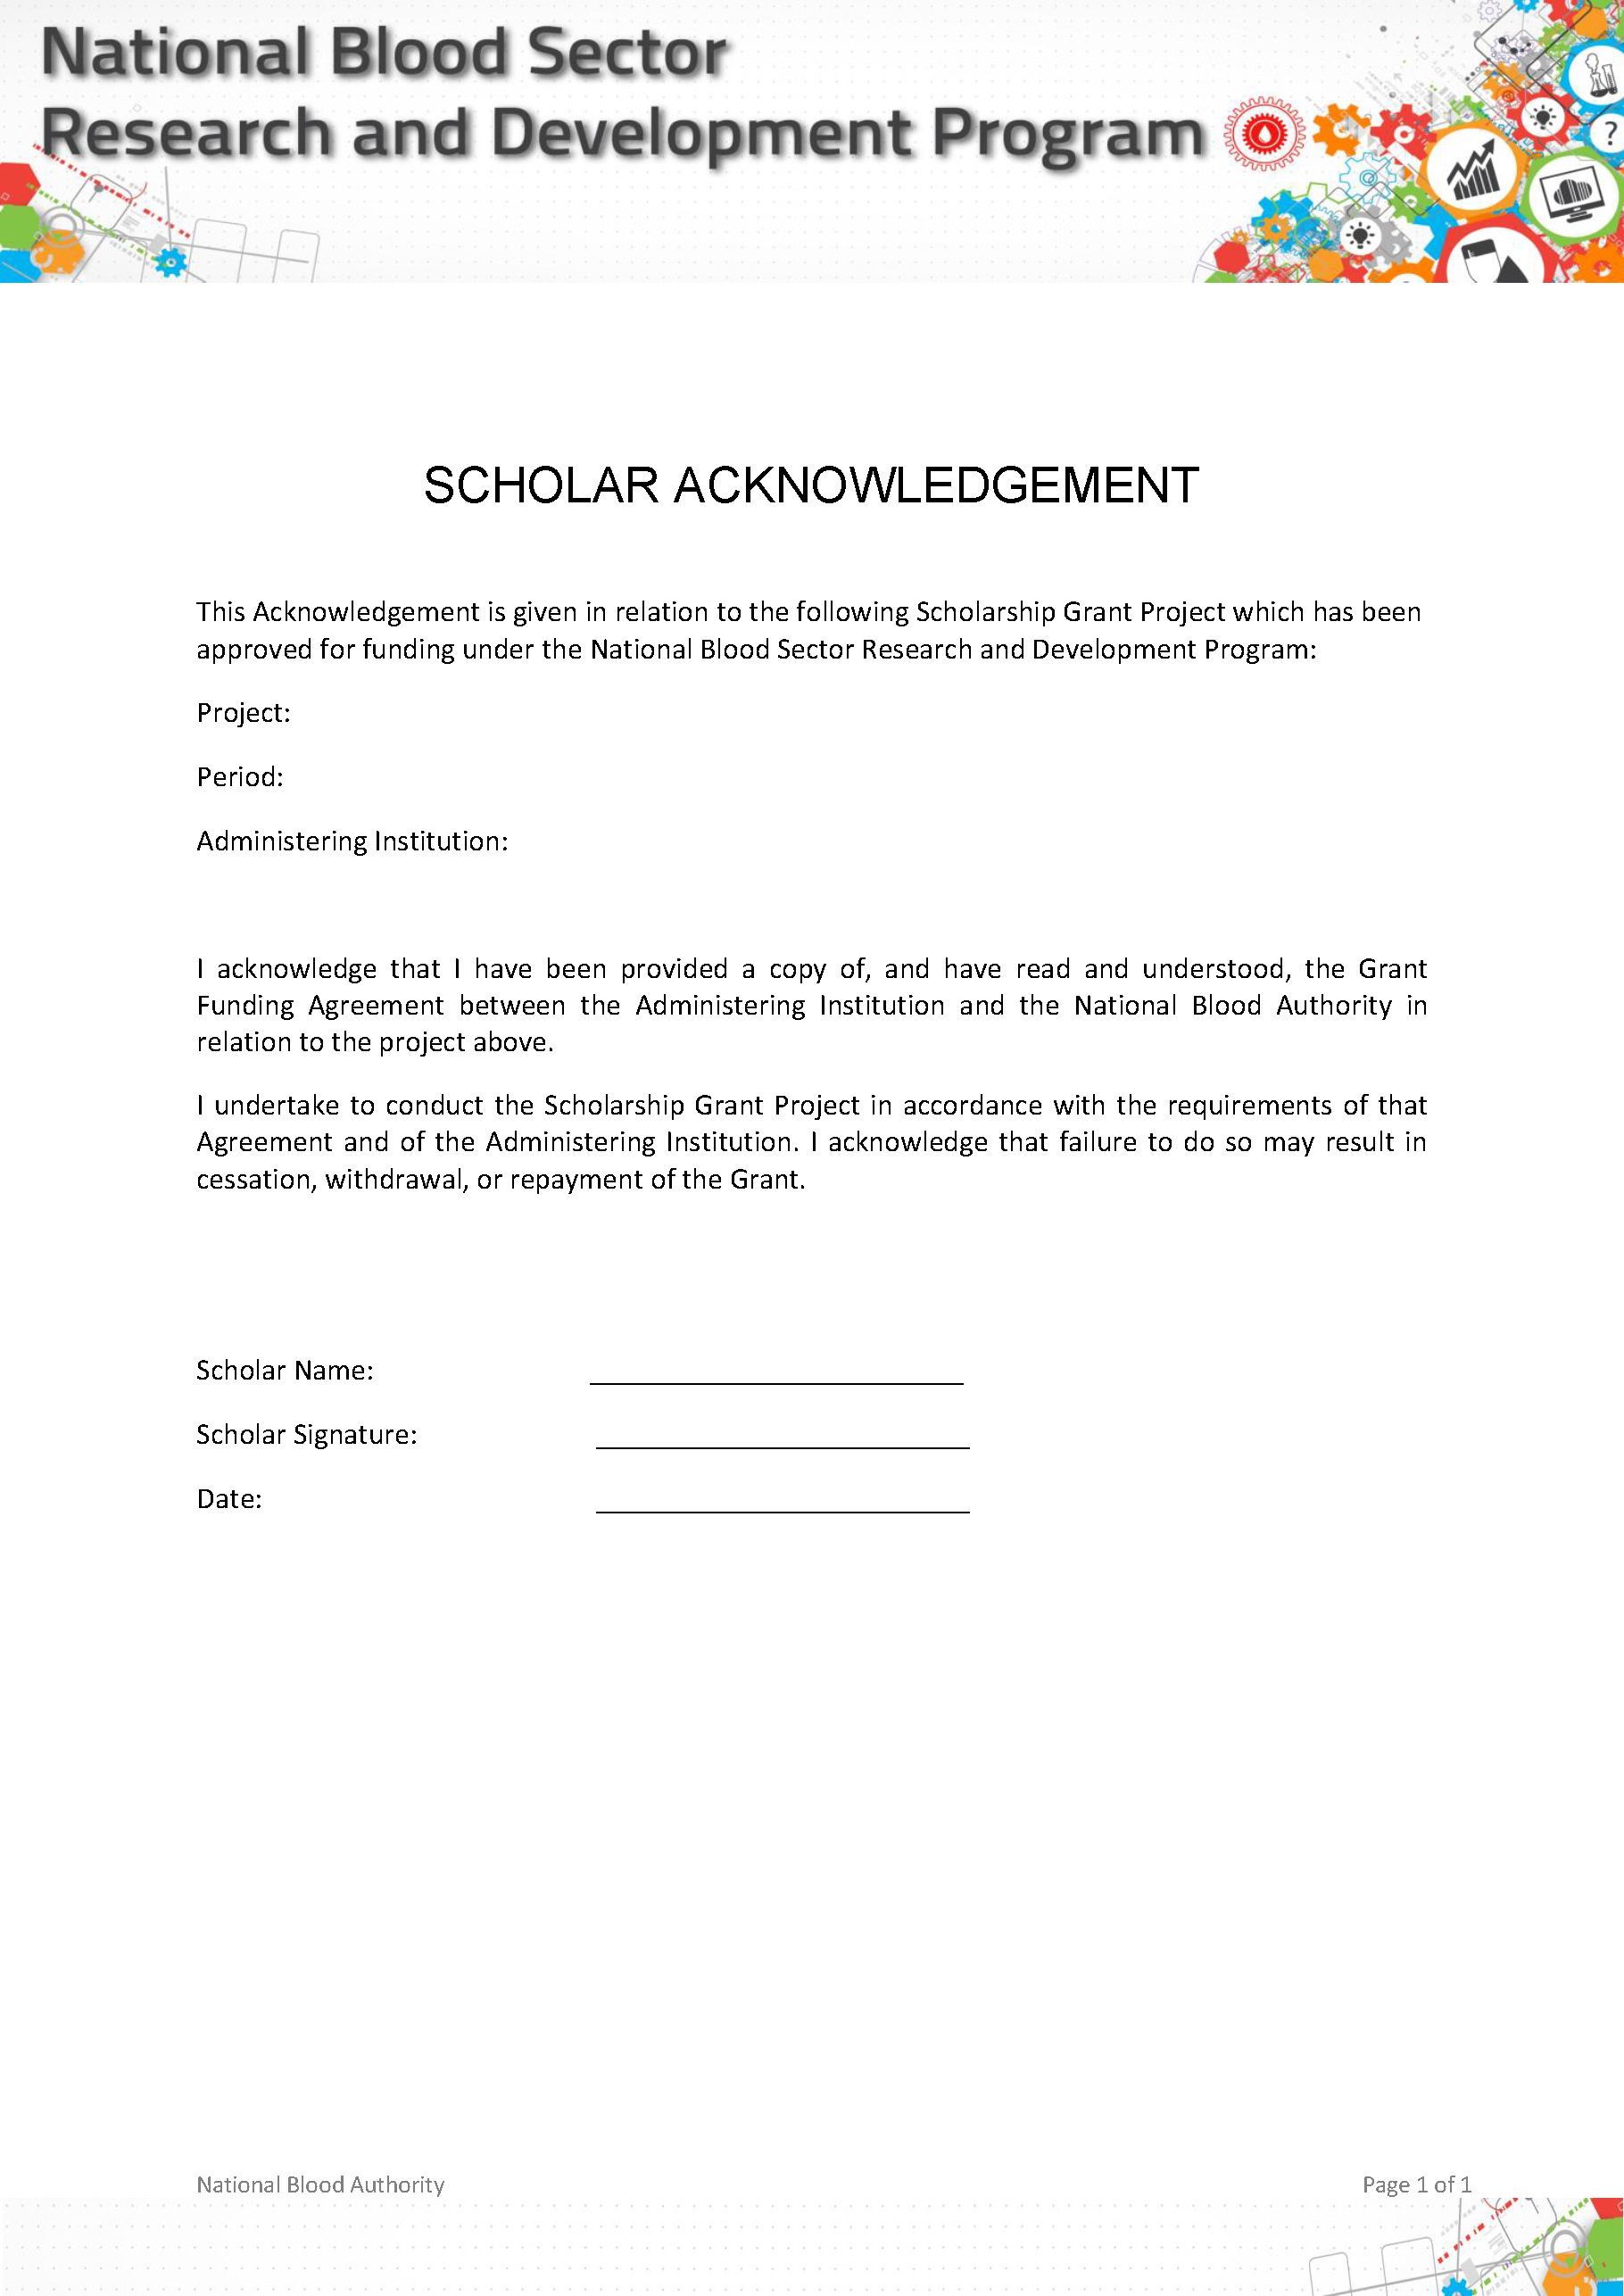 Image cover of Scholar Acknowledgement Form